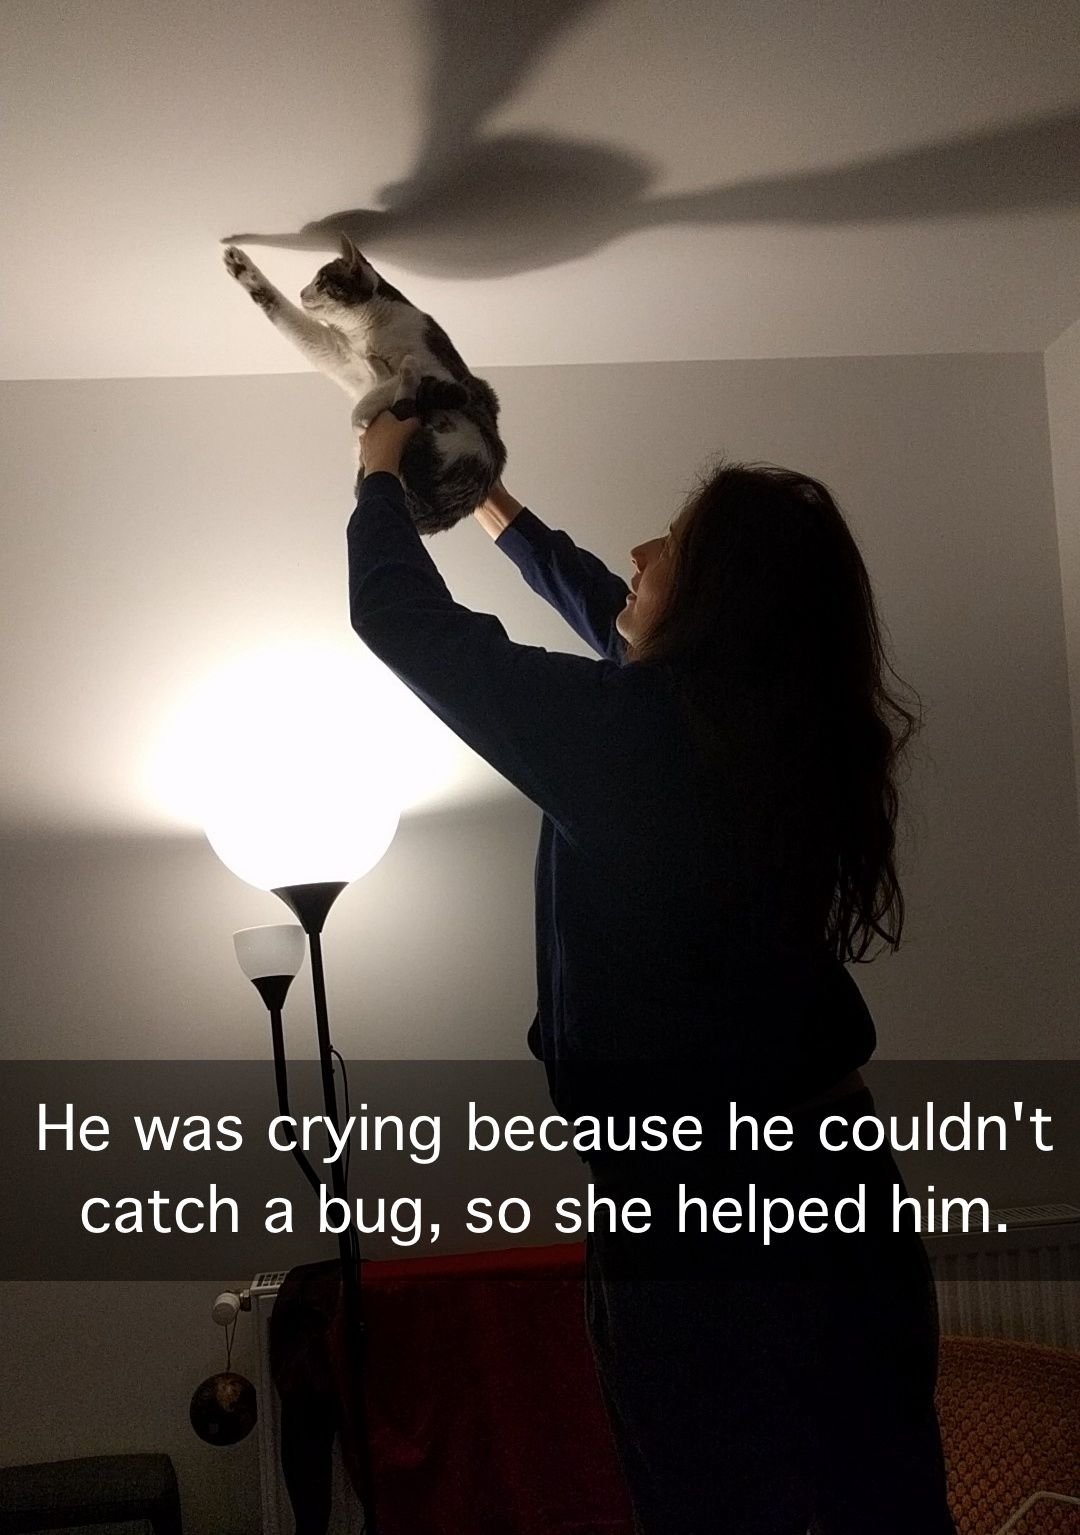 He was crying because he couldn't catch a bug, so she helped him.